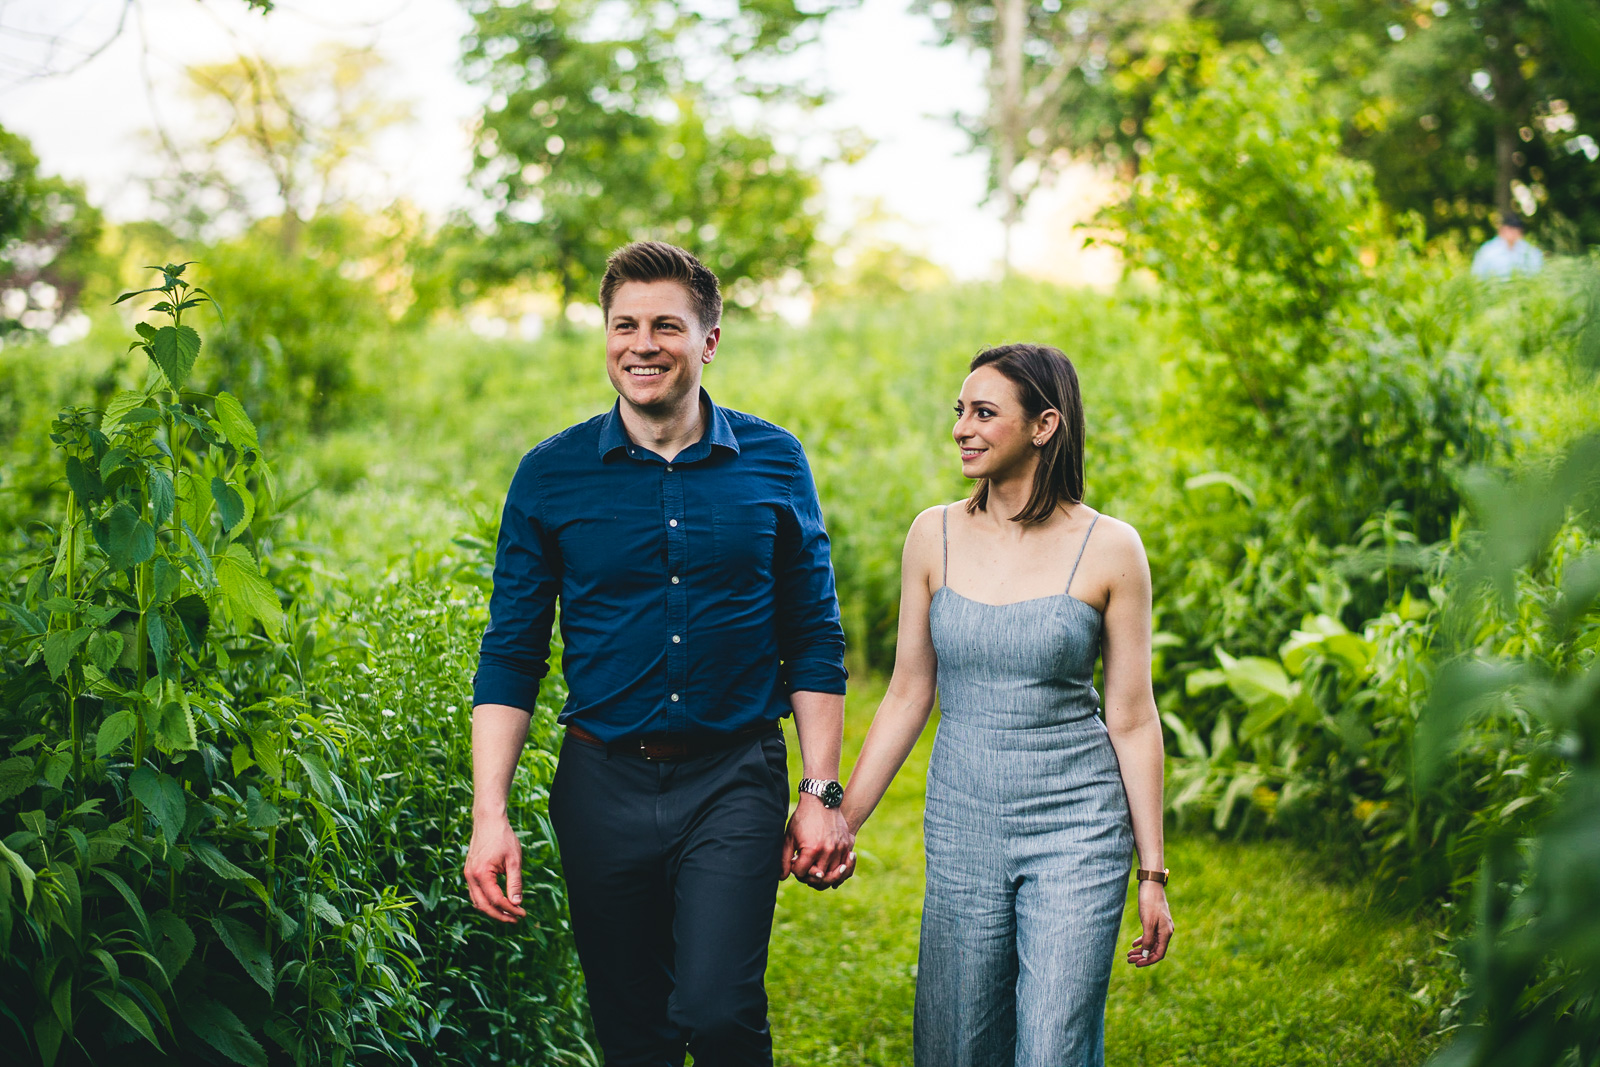 08 fun candid engagement session idea - Chicago Sunset Engagement Session // Lani + Ross